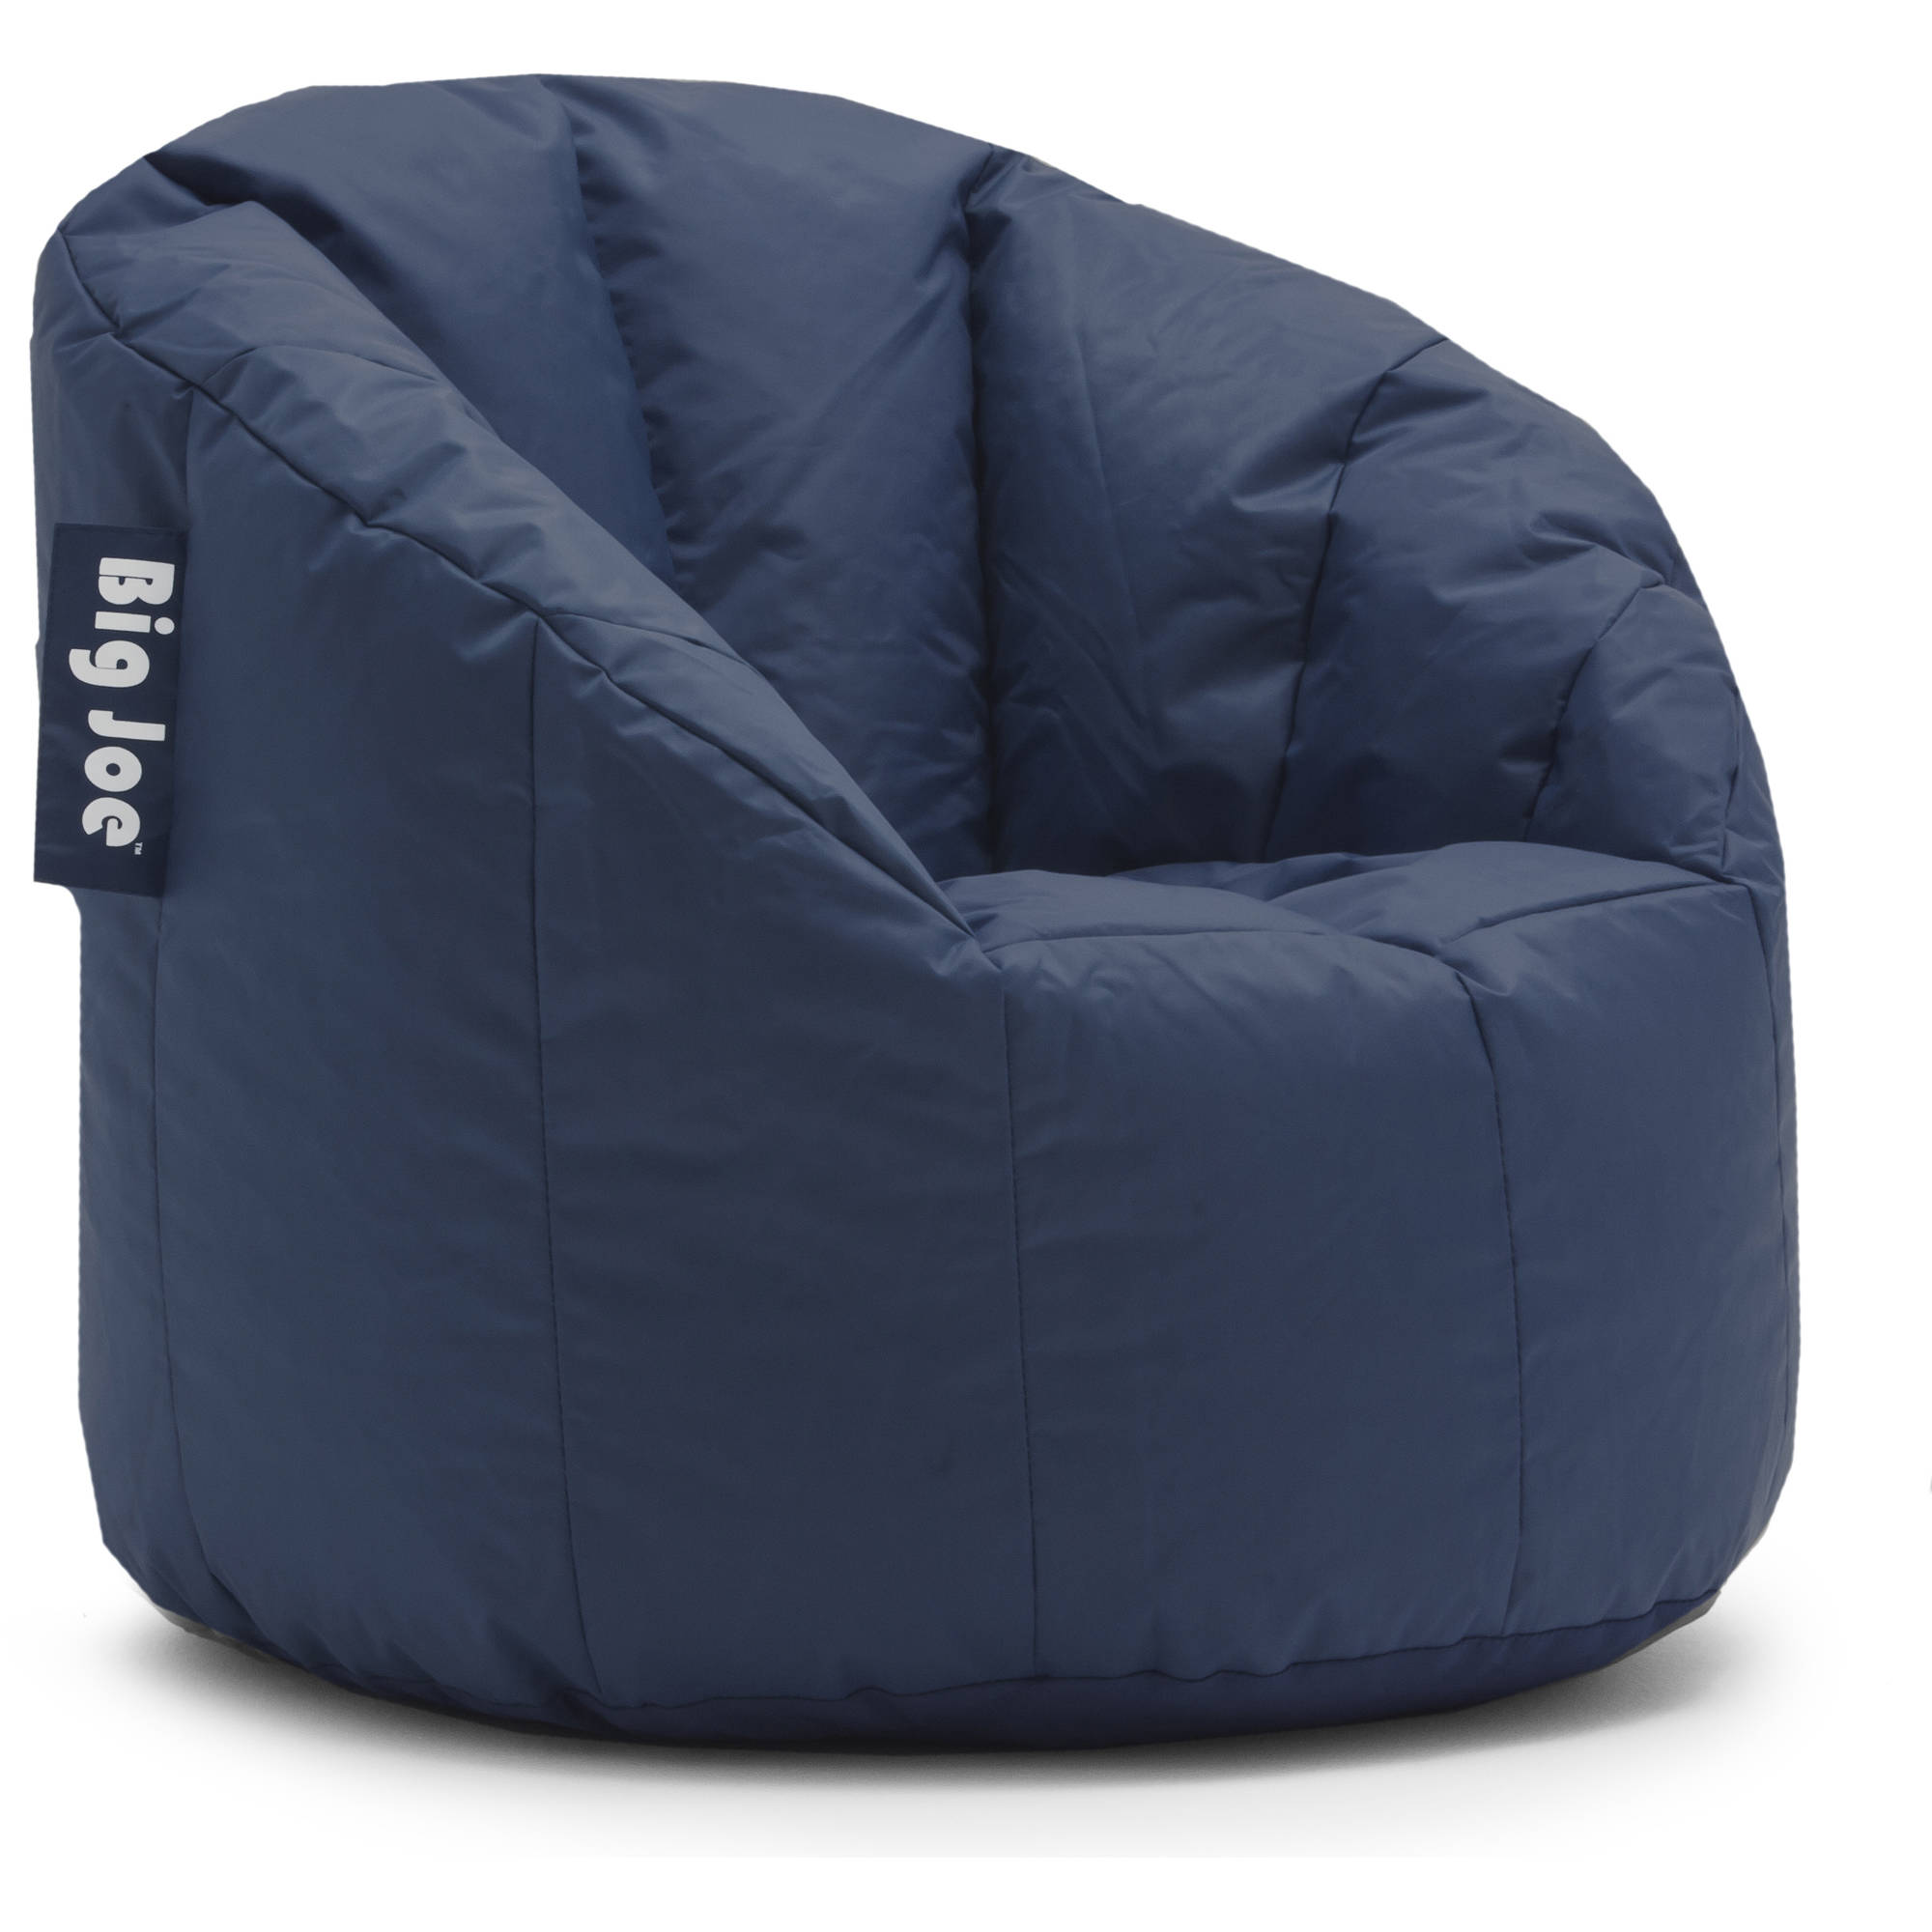 "Big Joe Milano Bean Bag Chair Multiple Colors 32"" x 28"" x 25"